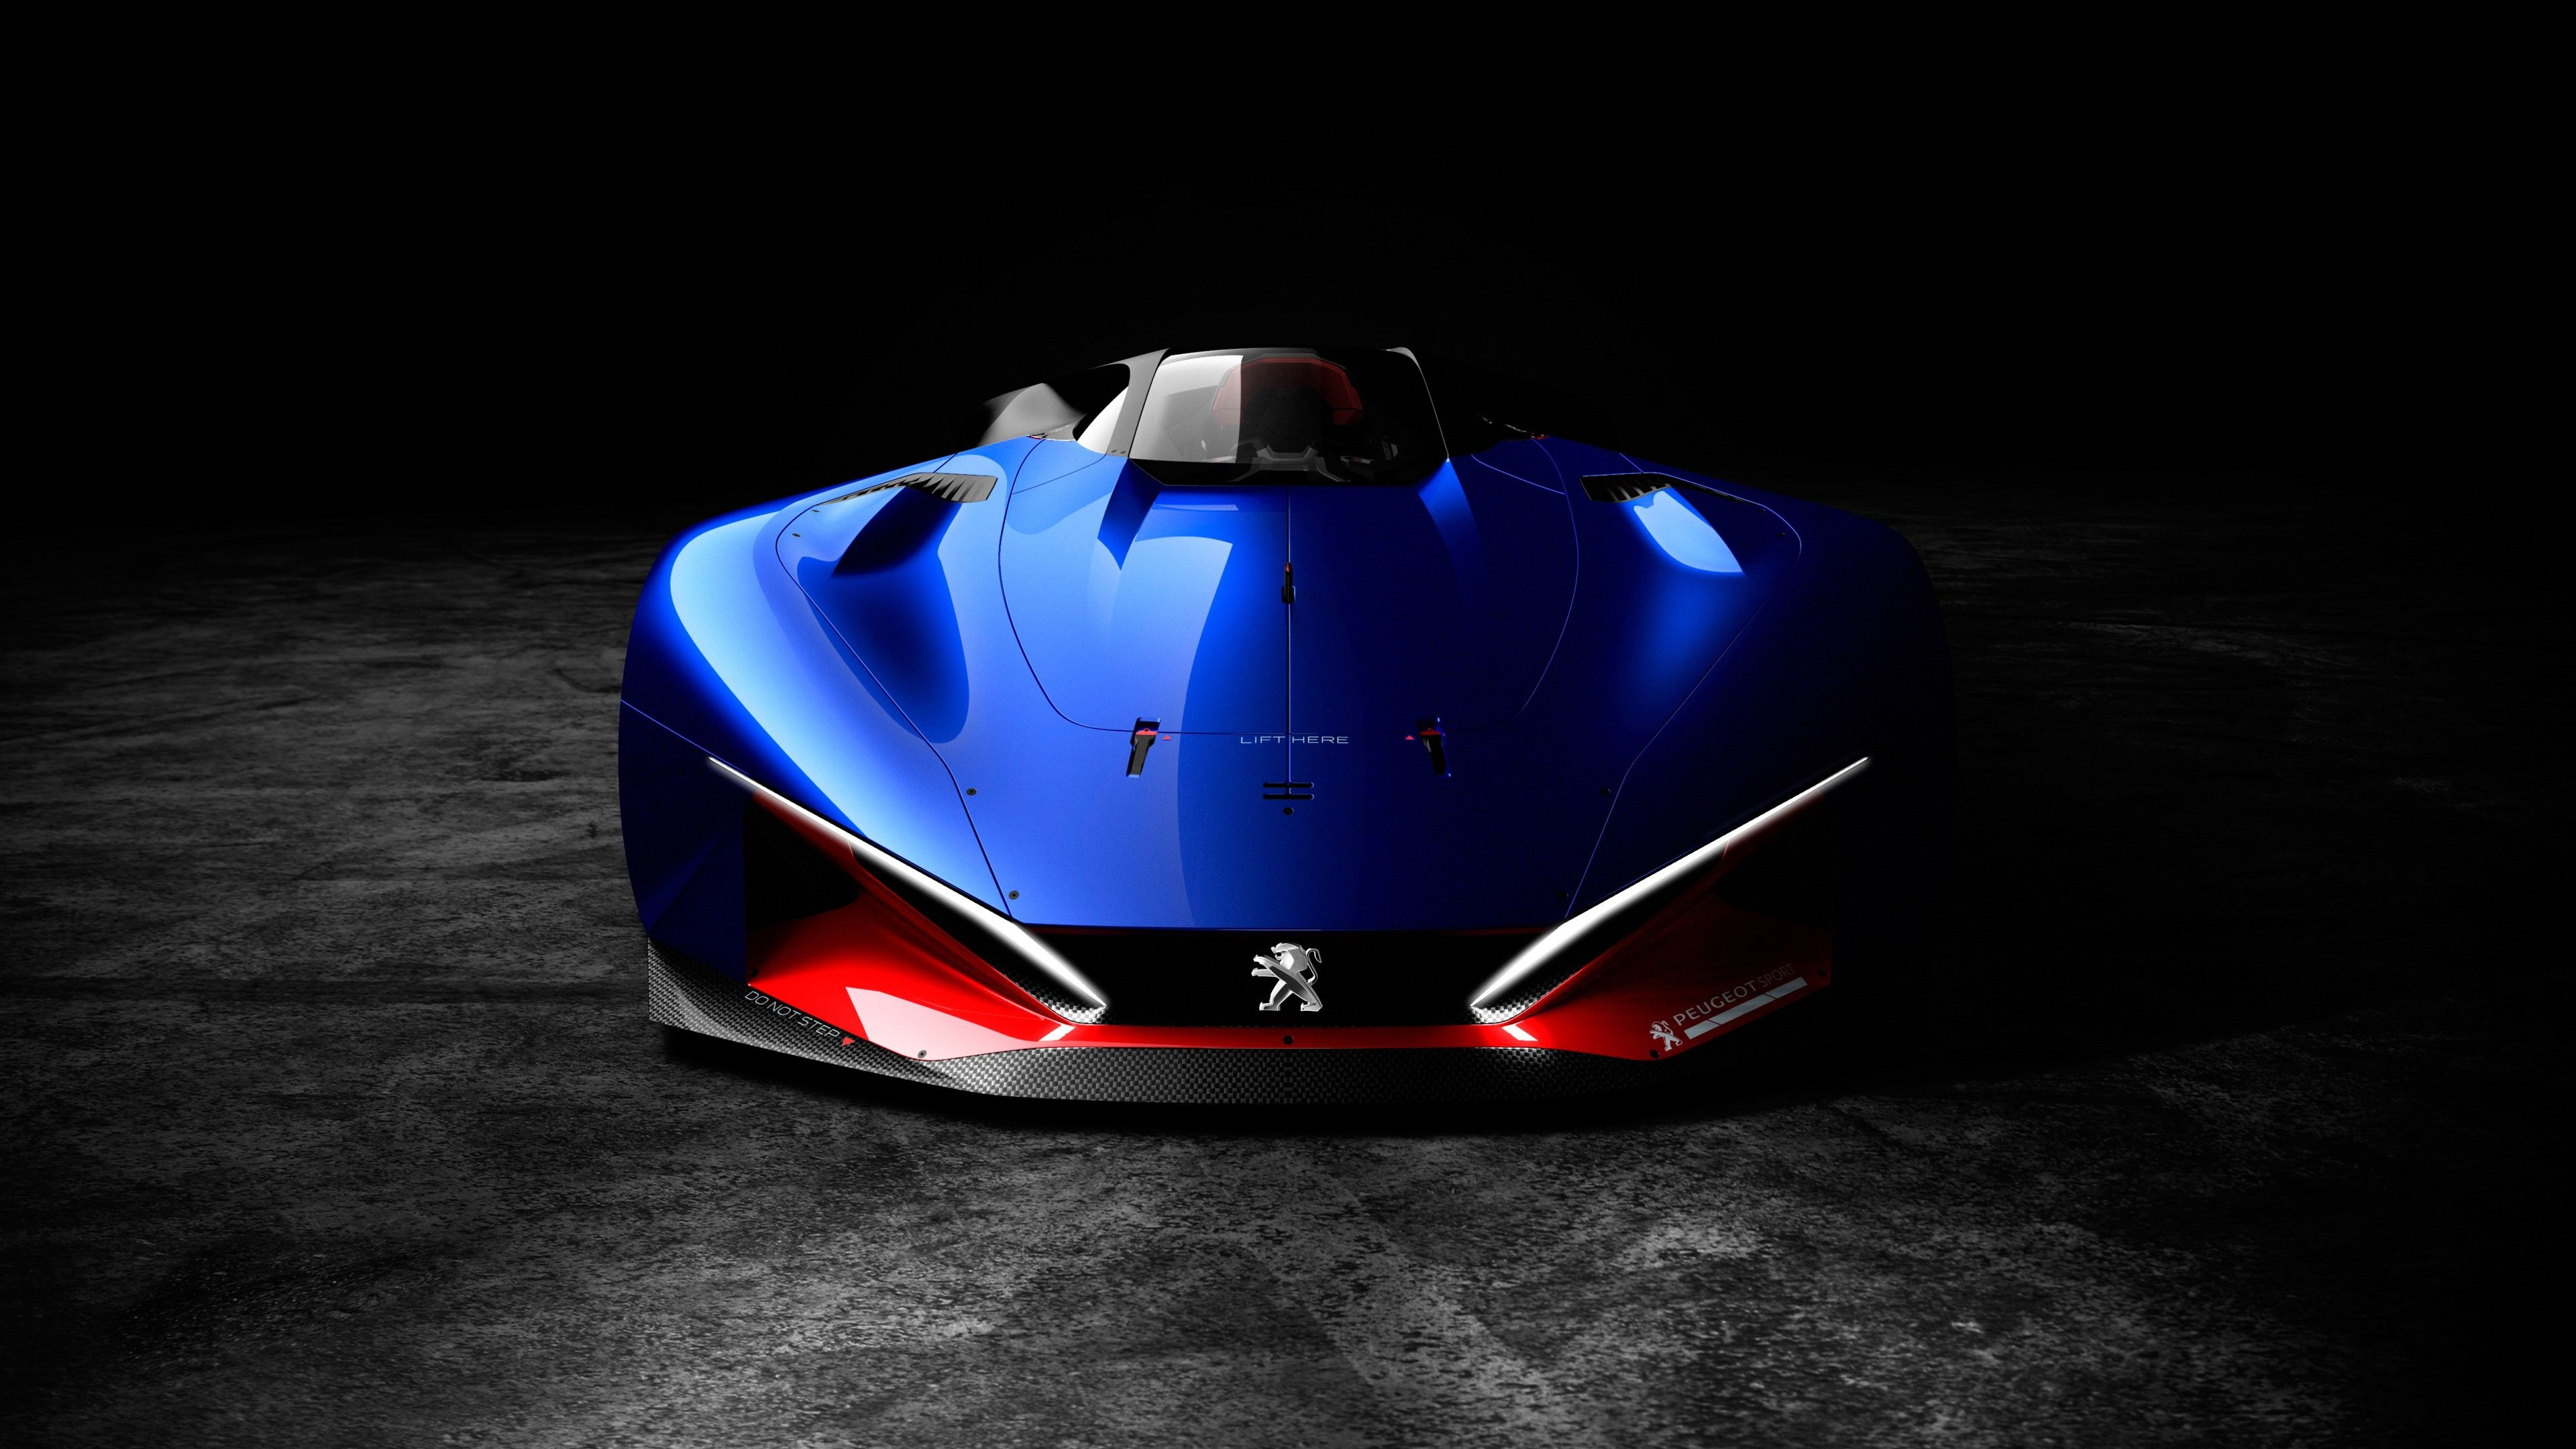 Peugeot simply HD Wallpapers backgrounds for geot cars rh